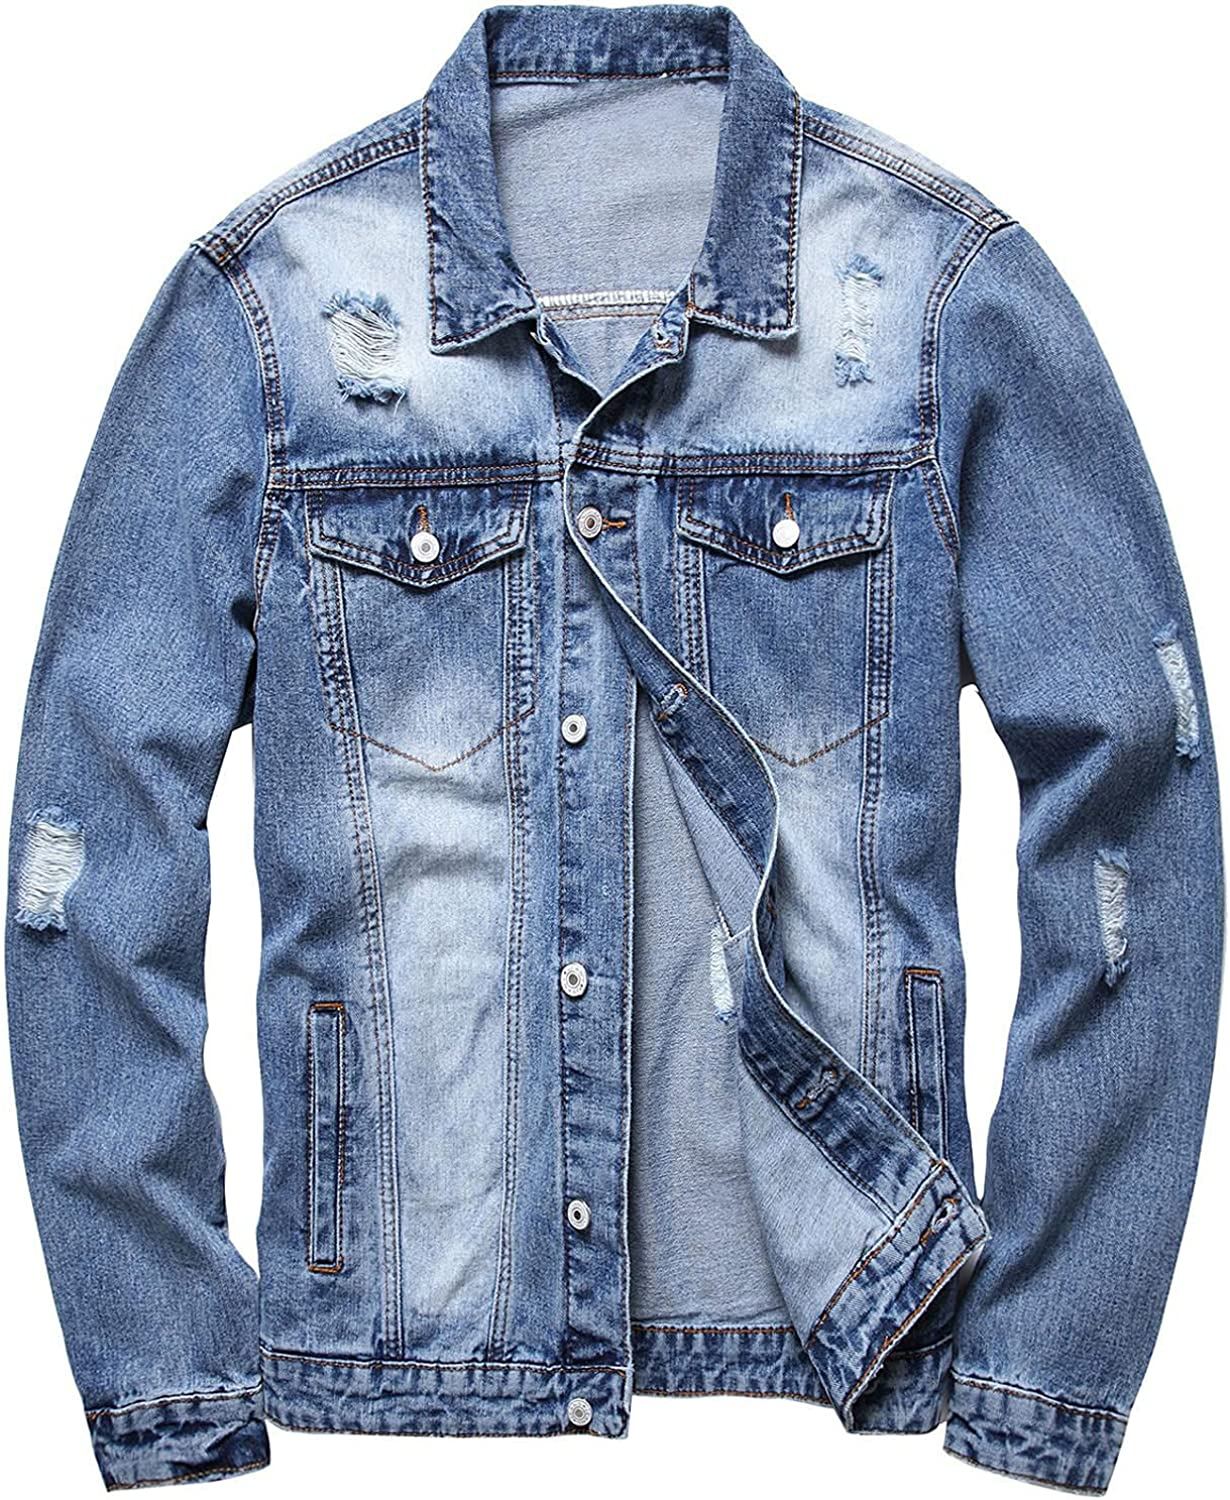 Hugogo Mens Denim Coats and Jackets excellence Button Selling rankings Up Poc Fashion Casual